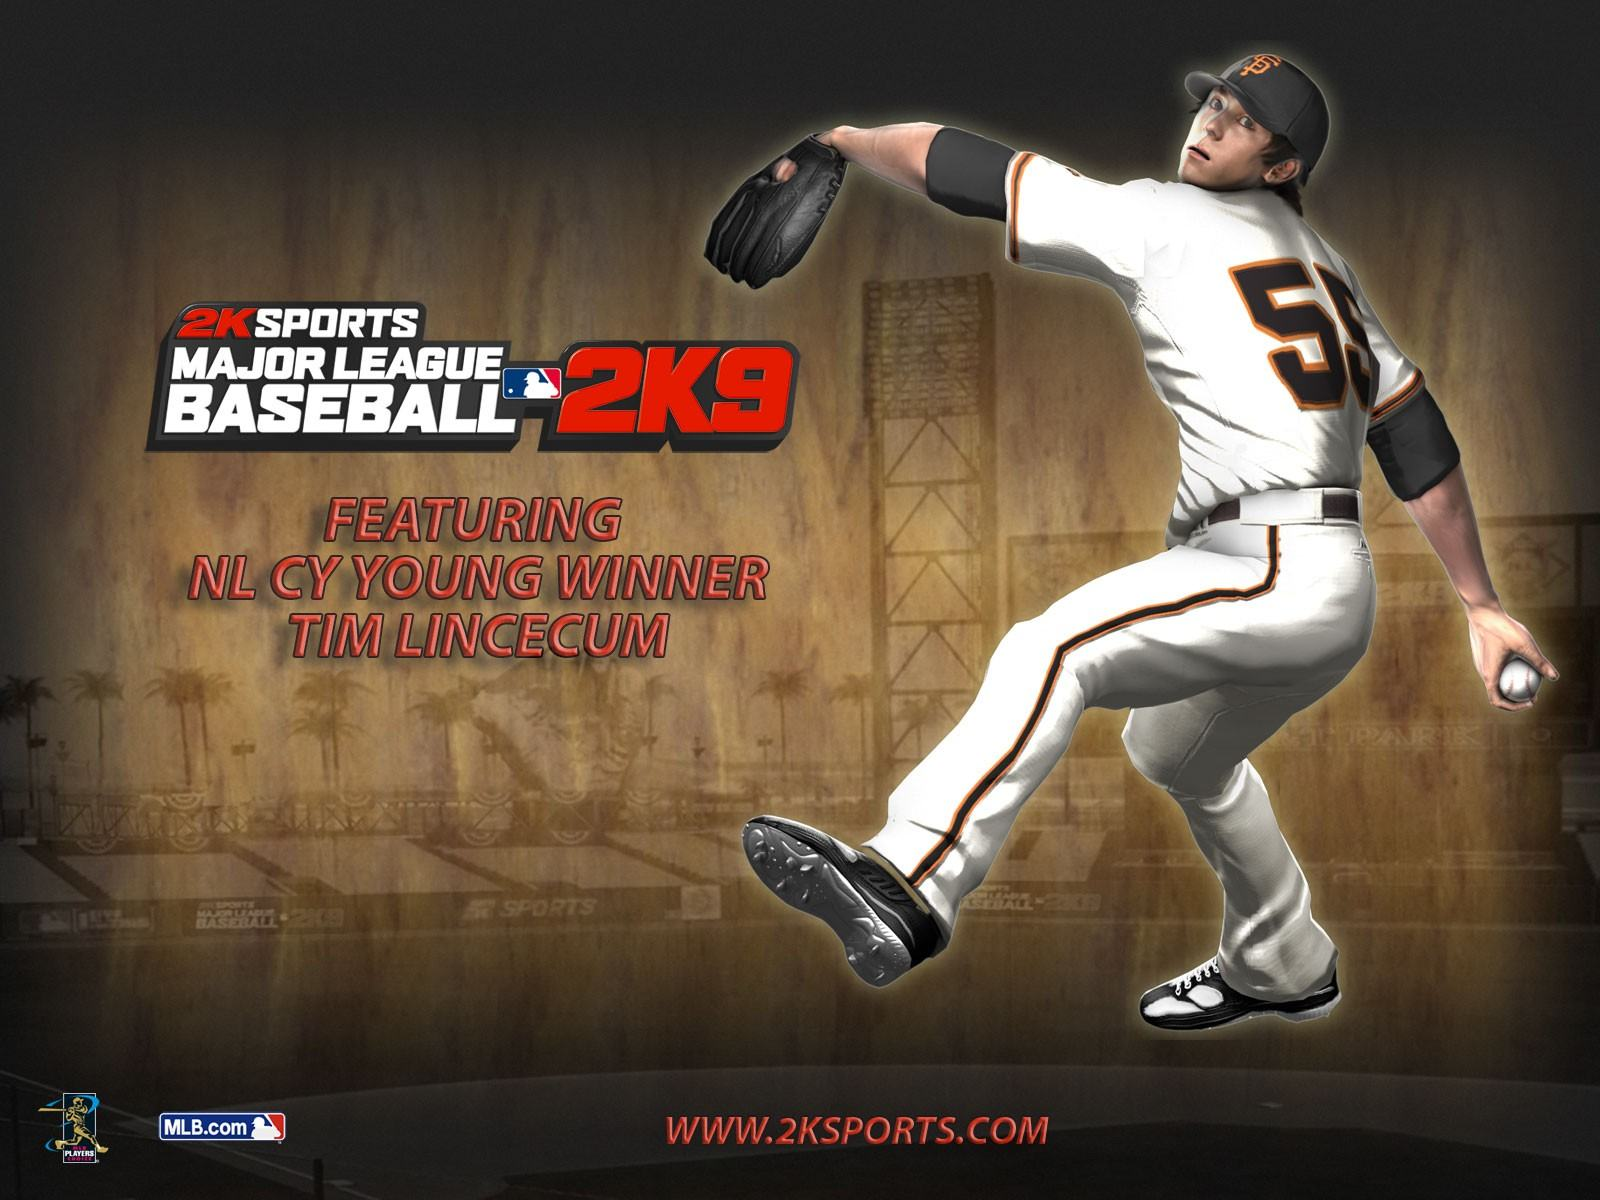 Обои Major League Baseball 2K9 1600x1200